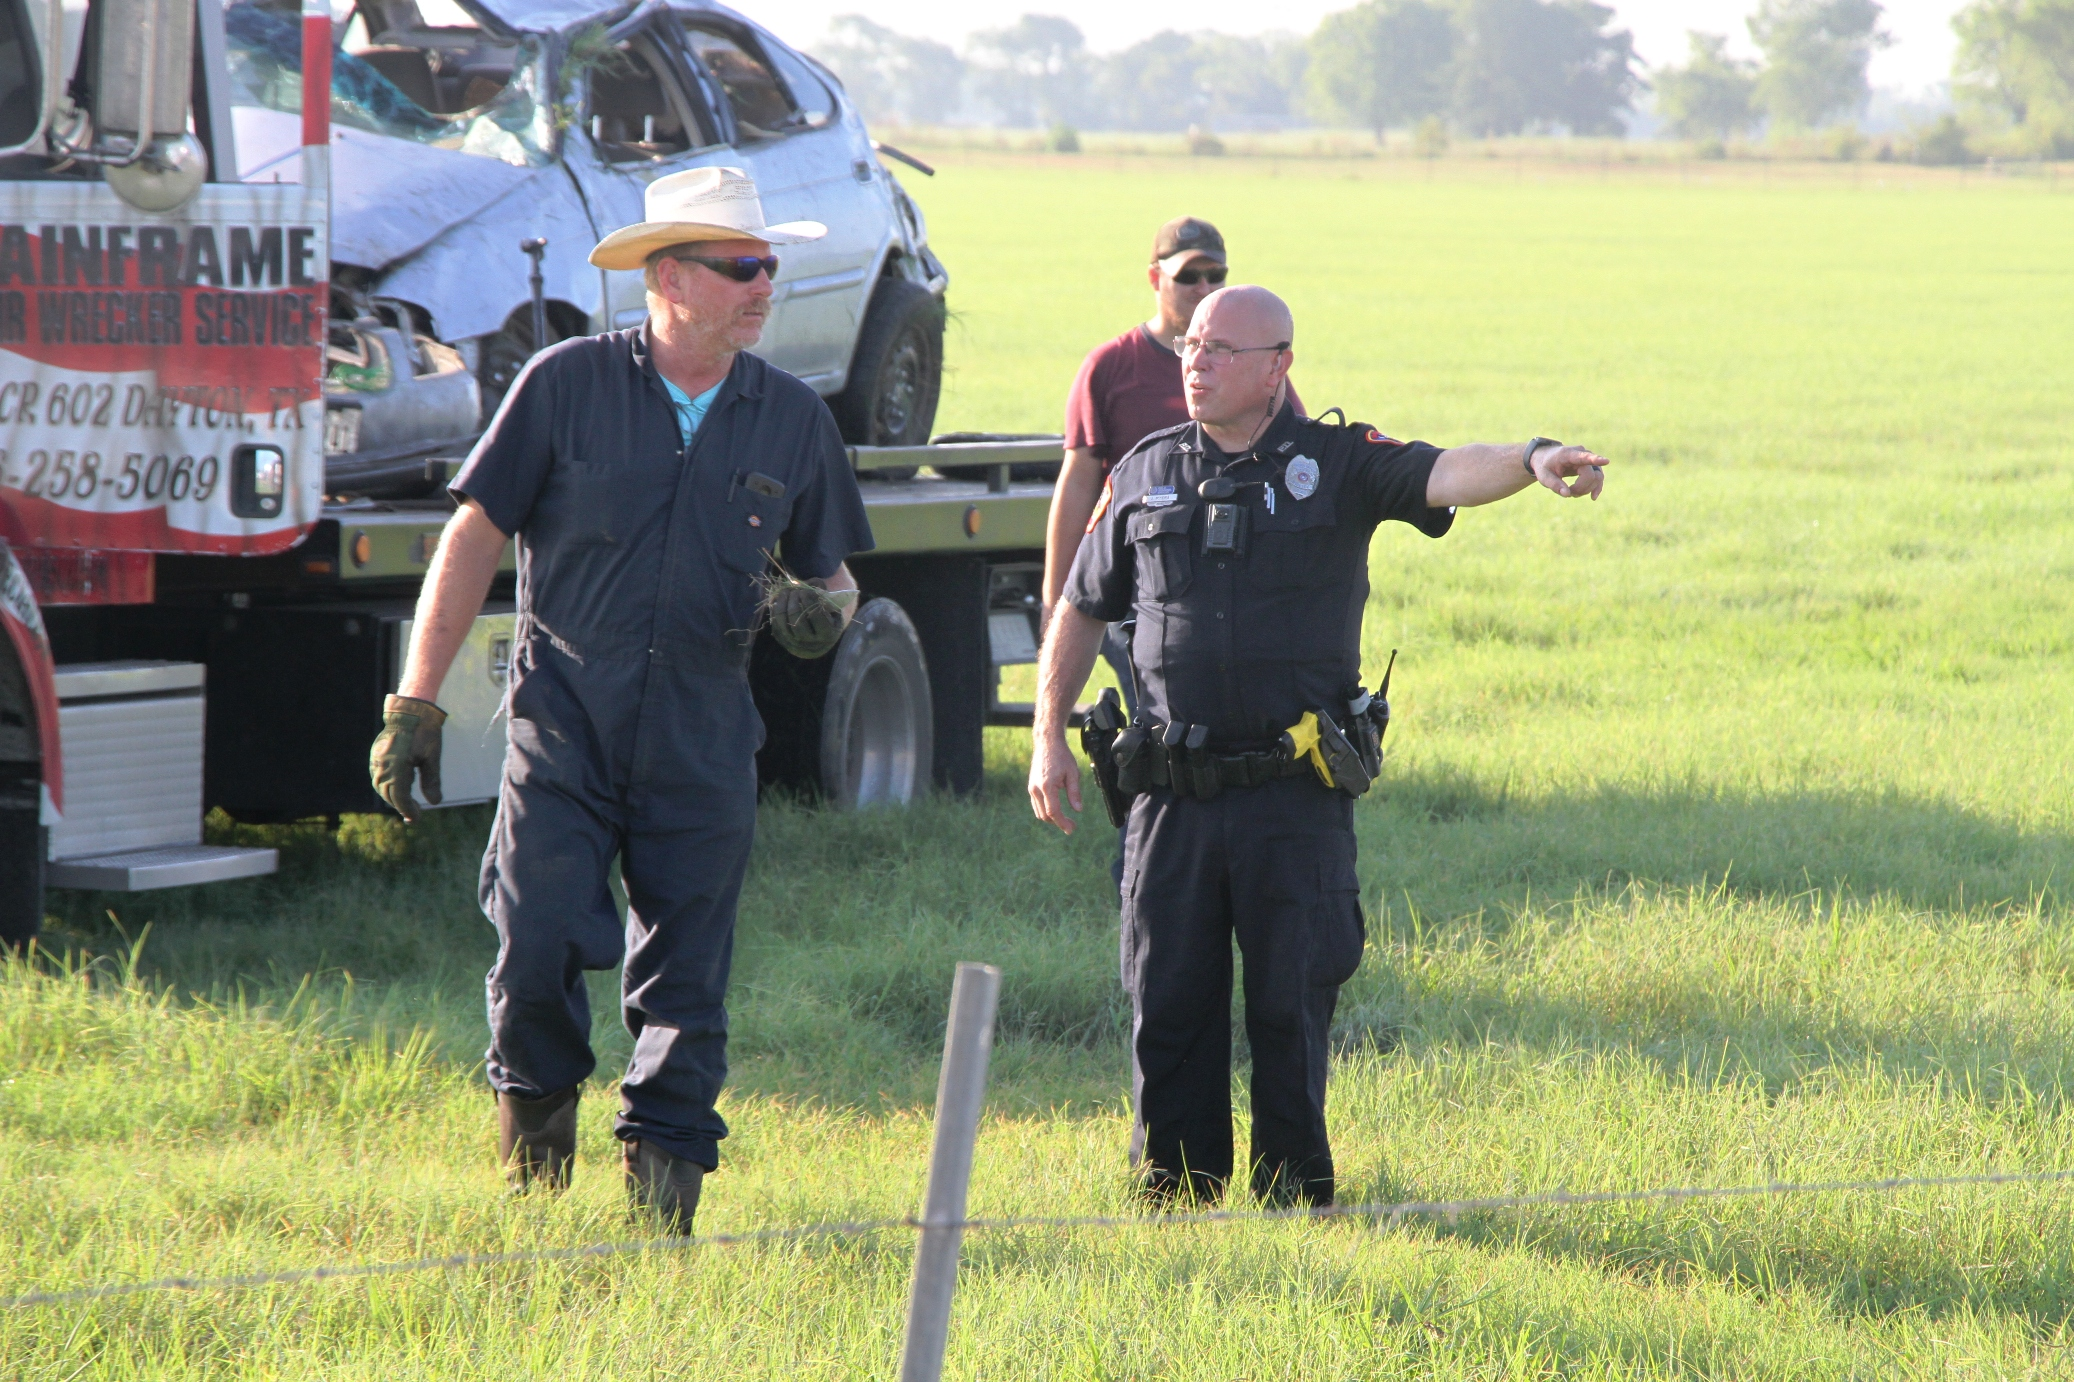 Chase in Dayton ends with fatal crash Monday | Bluebonnet News